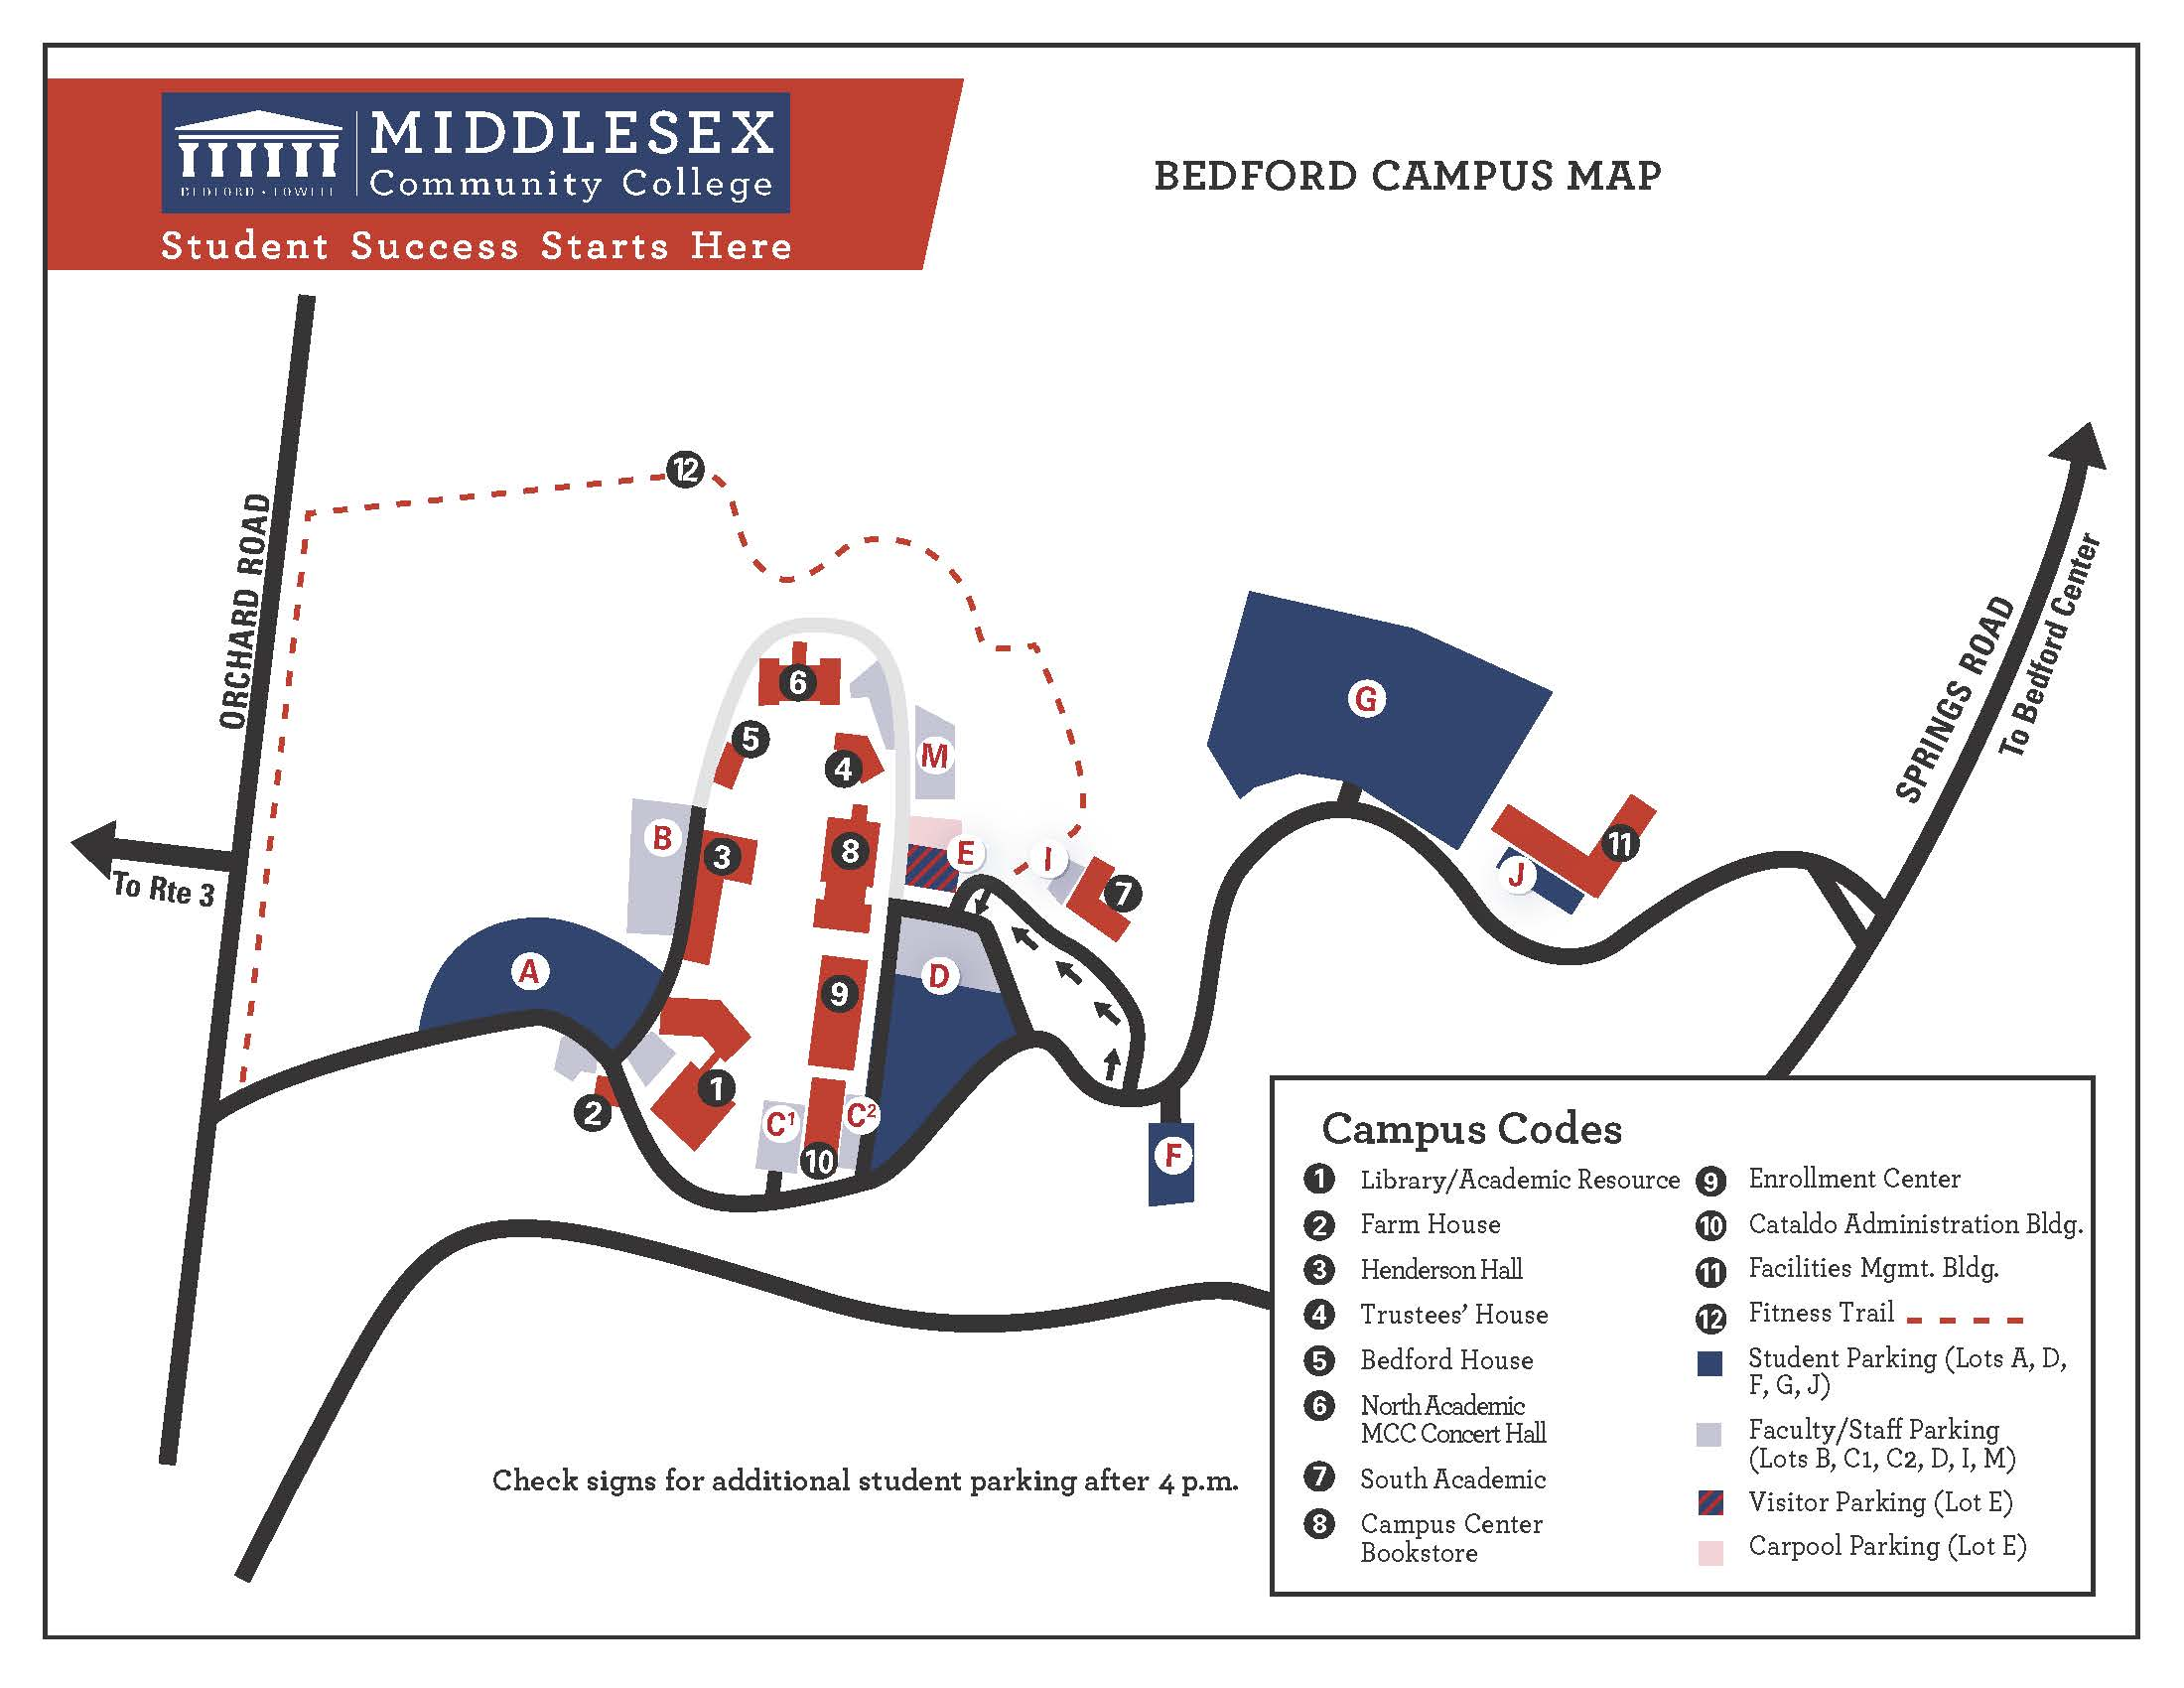 Map of the Bedford Campus